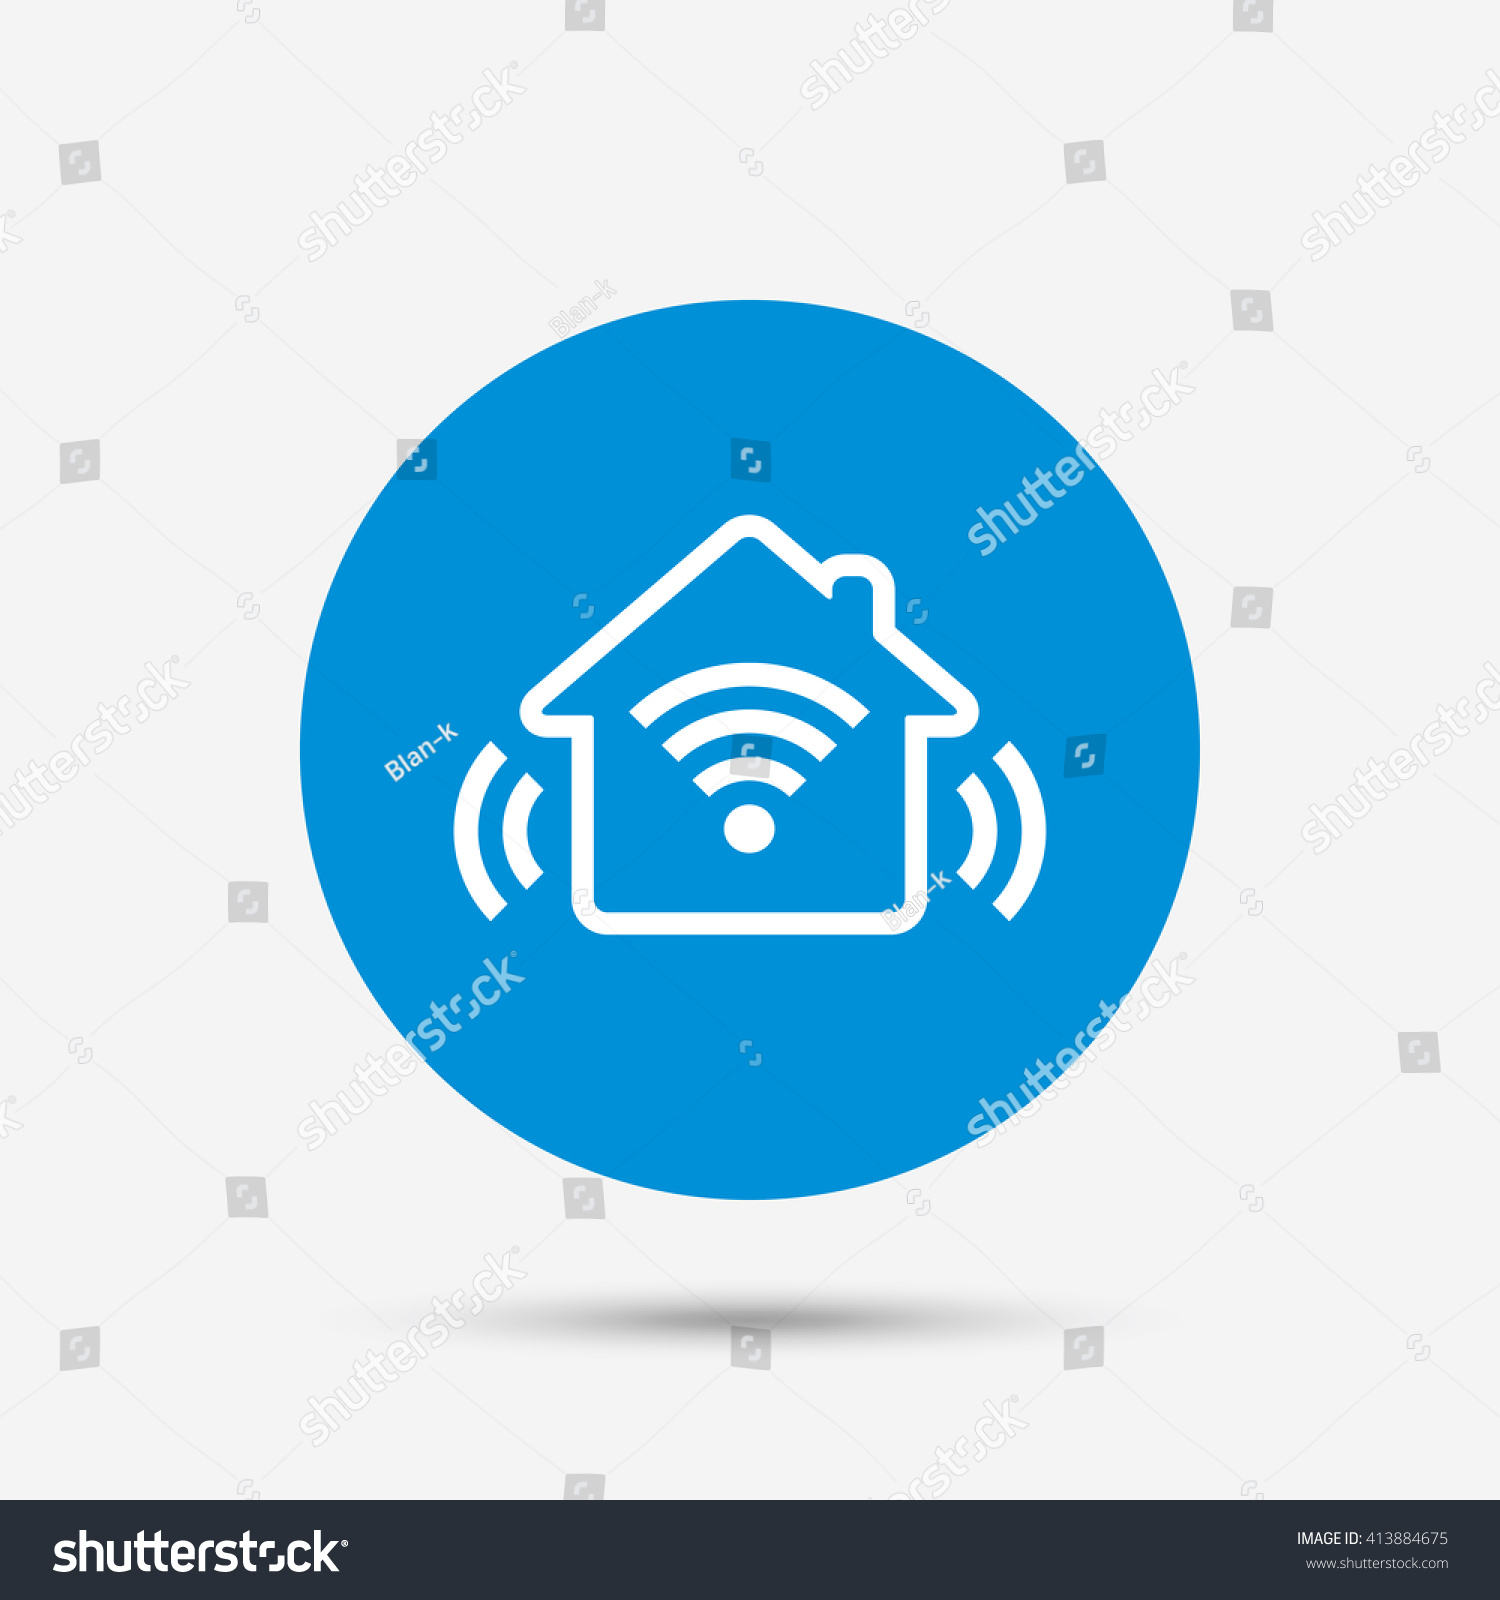 smart home sign icon smart house stock vector 413884675 - shutterstock